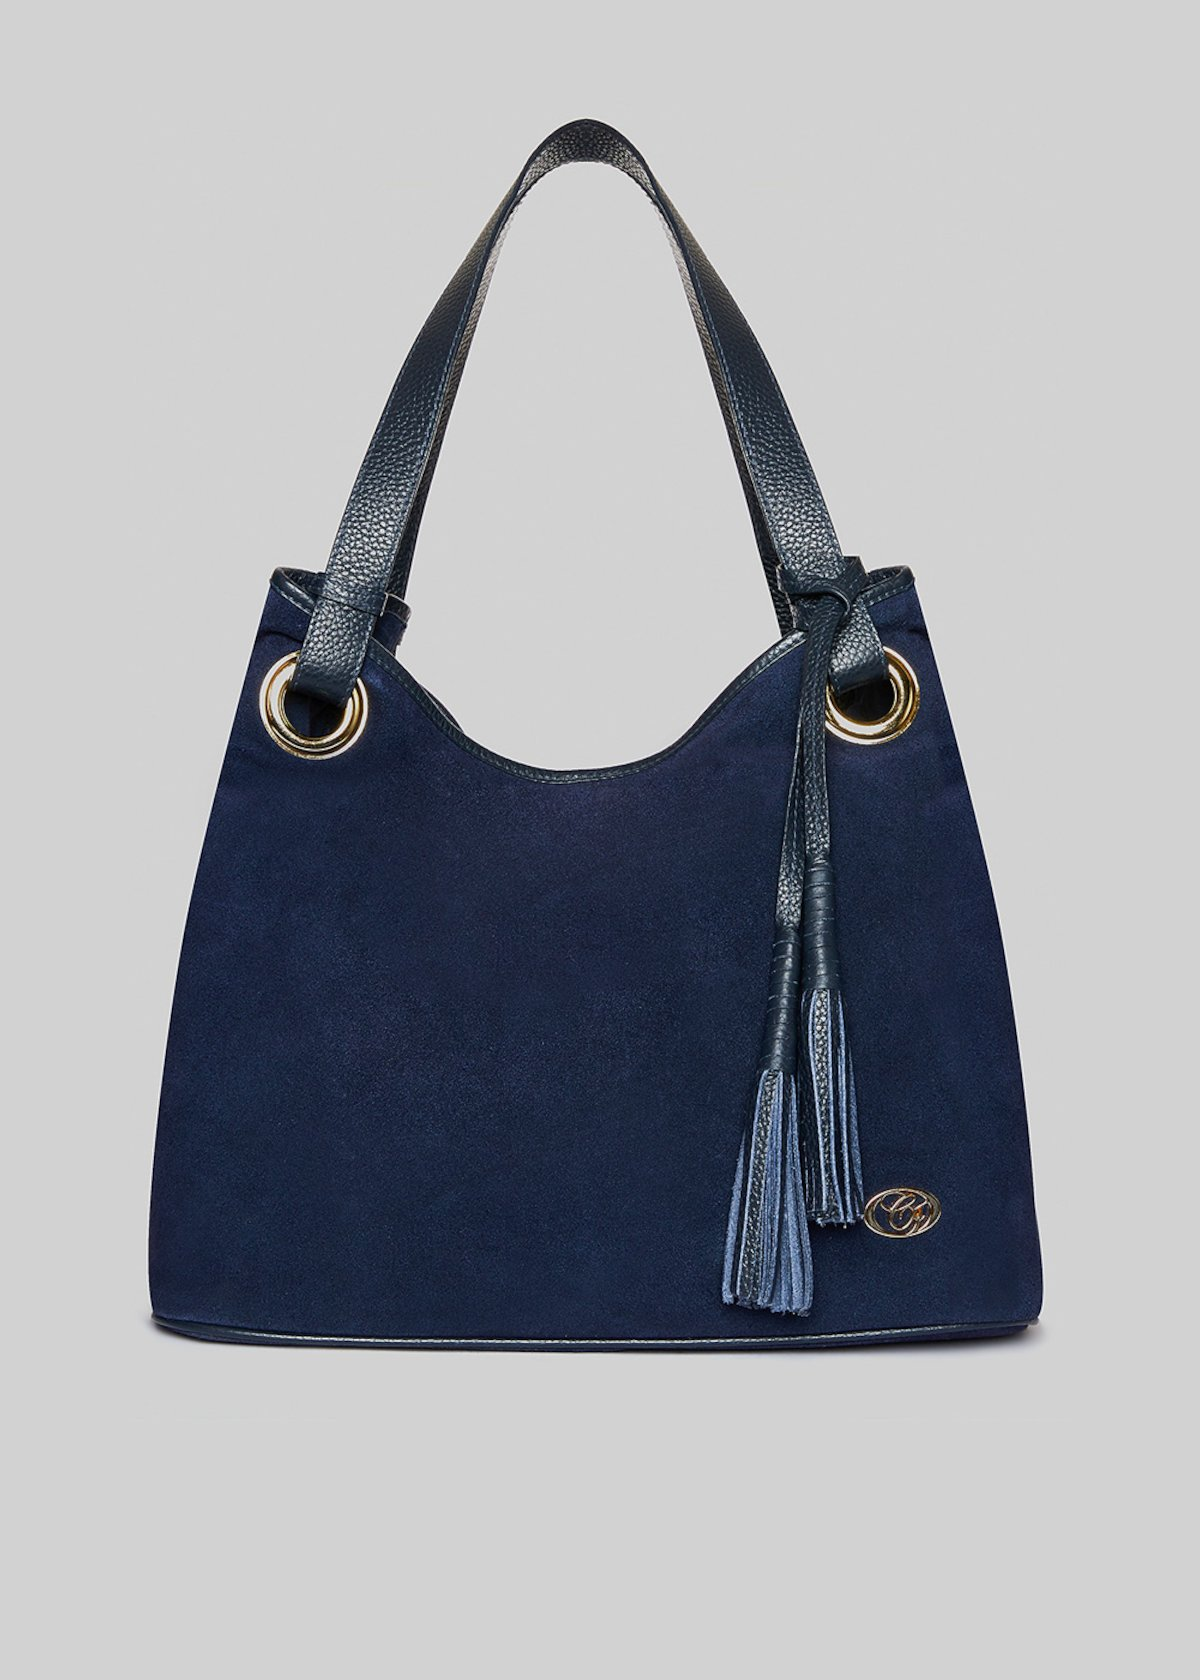 Blaudia leather bag real suede and tassels detail - Dark Blue